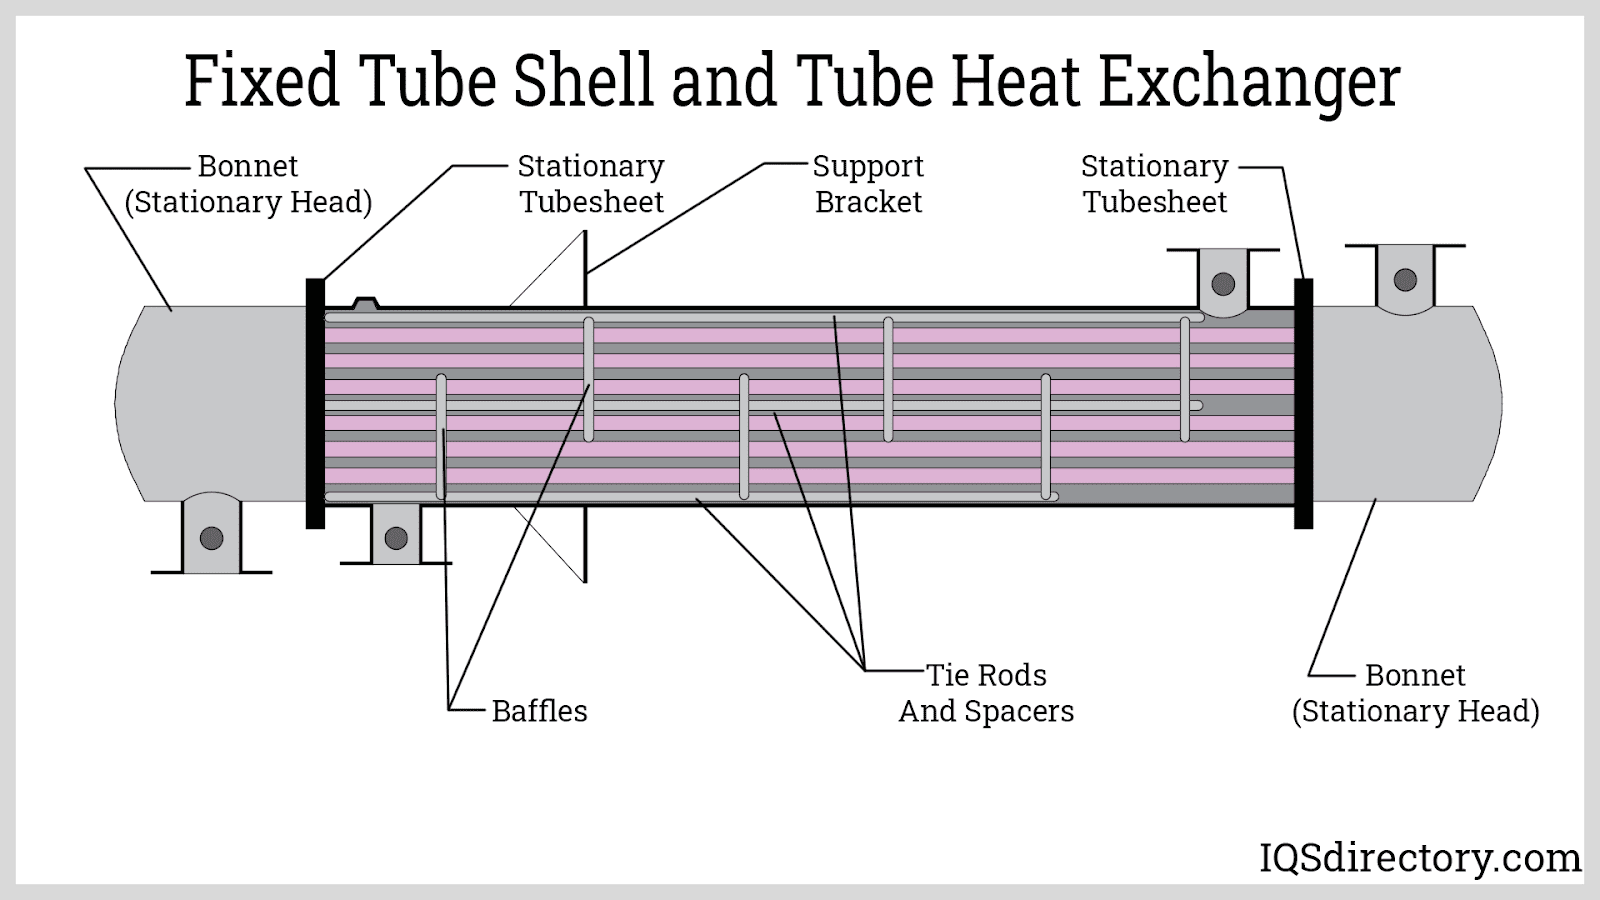 Fixed Tube Shell and Tube Heat Exchanger